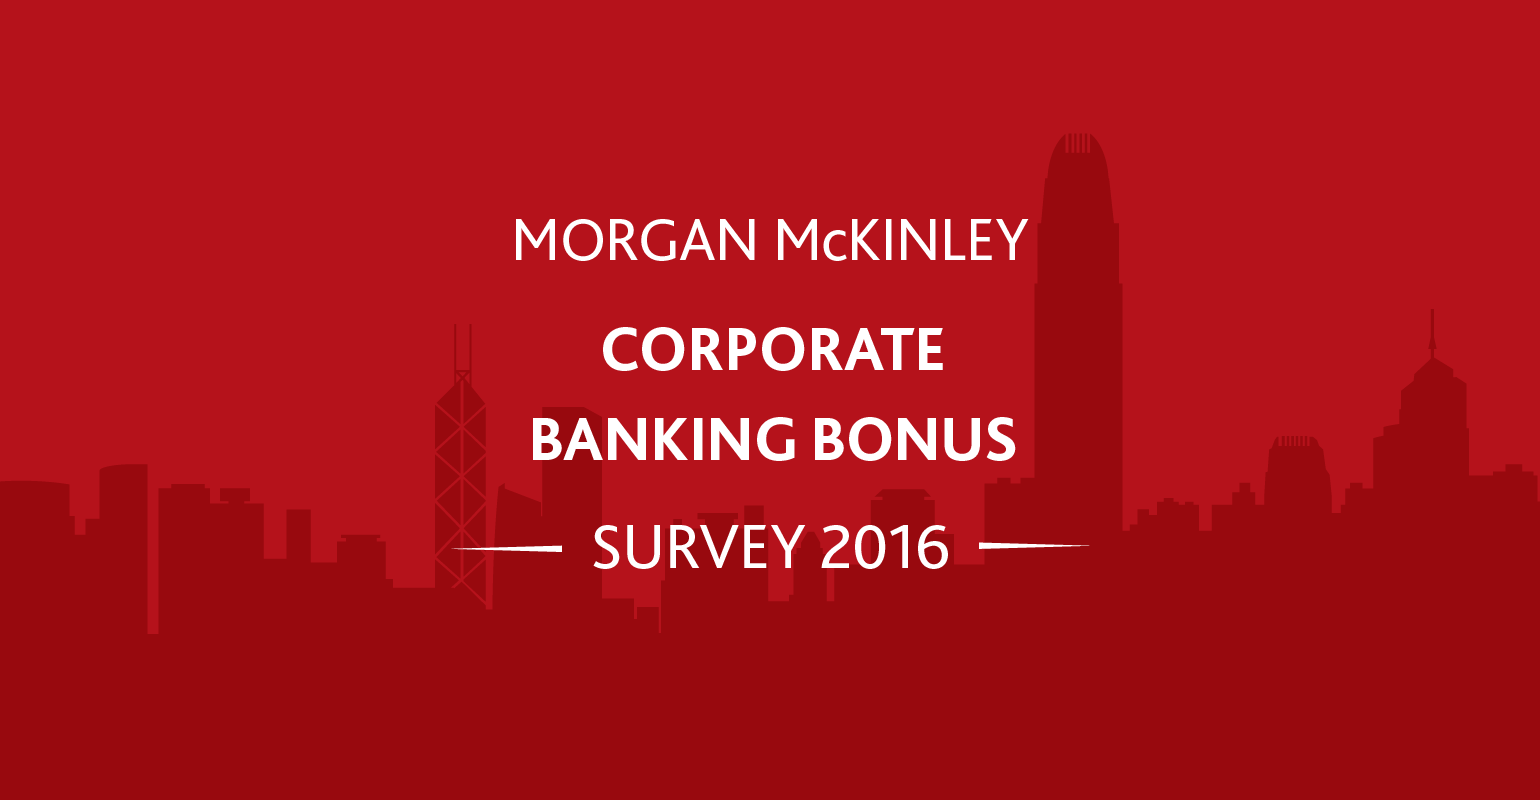 Corporate Banking Bonus Survey